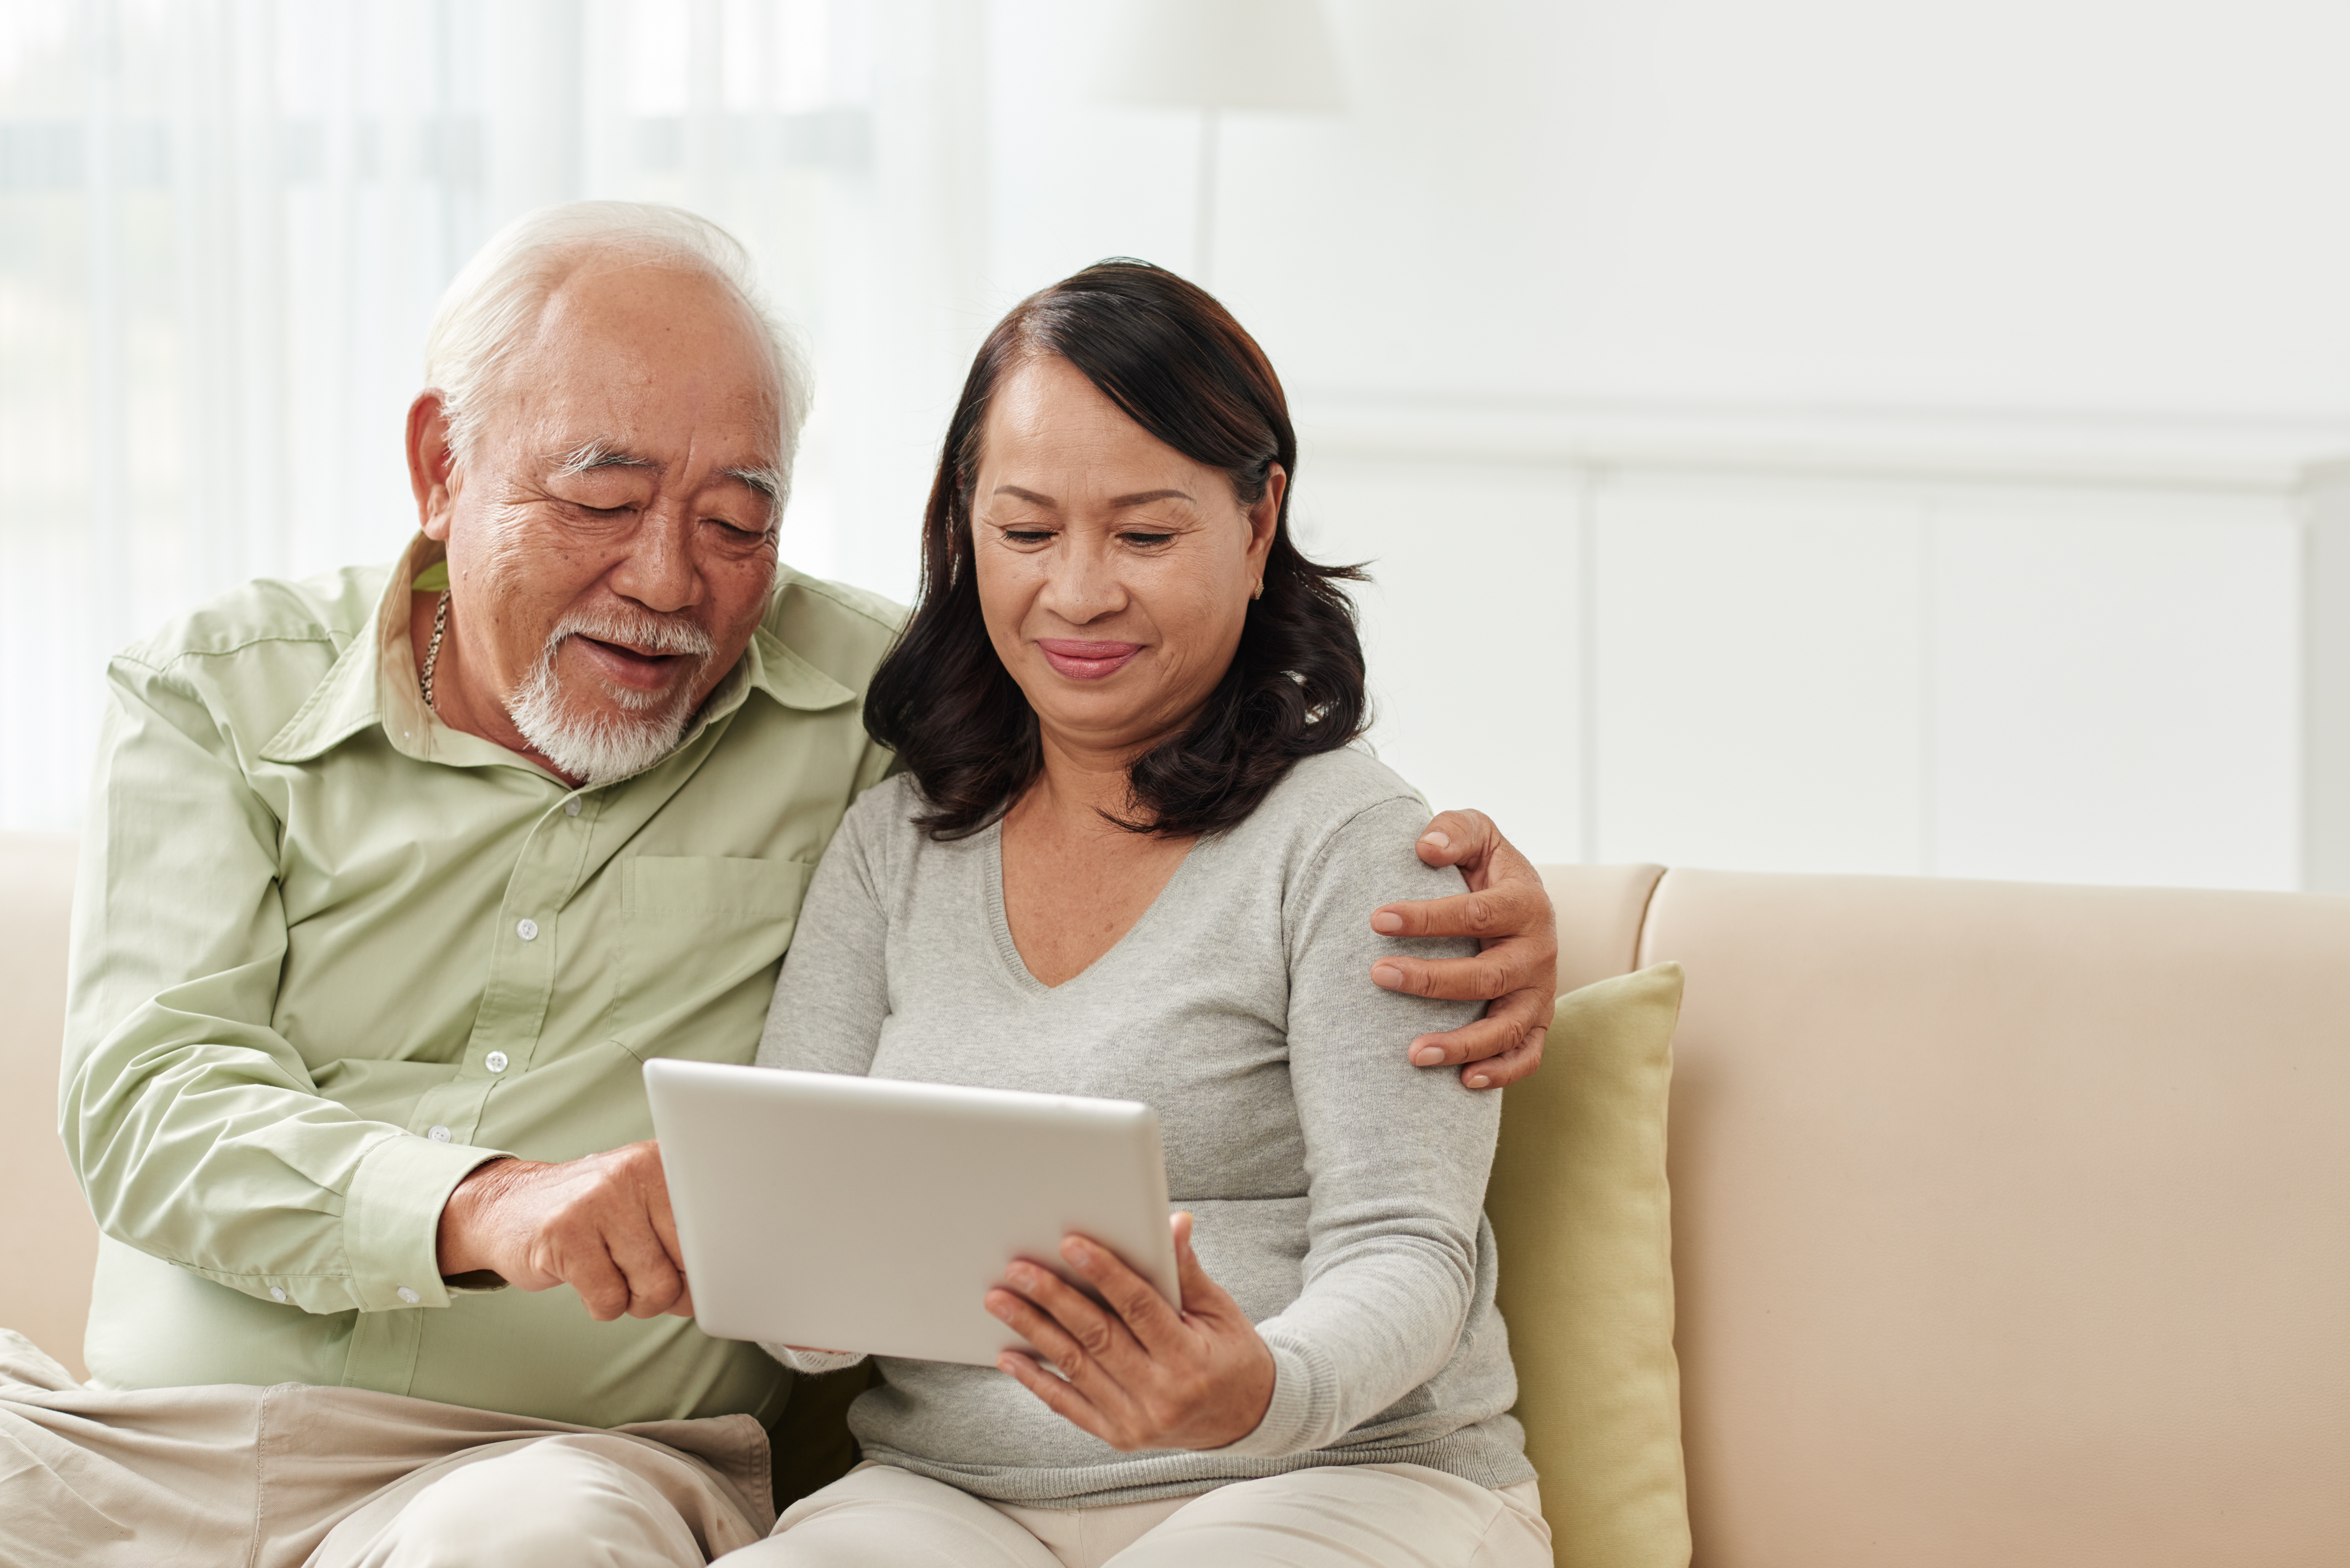 senior-couple-looking-at-tablet-on-couch